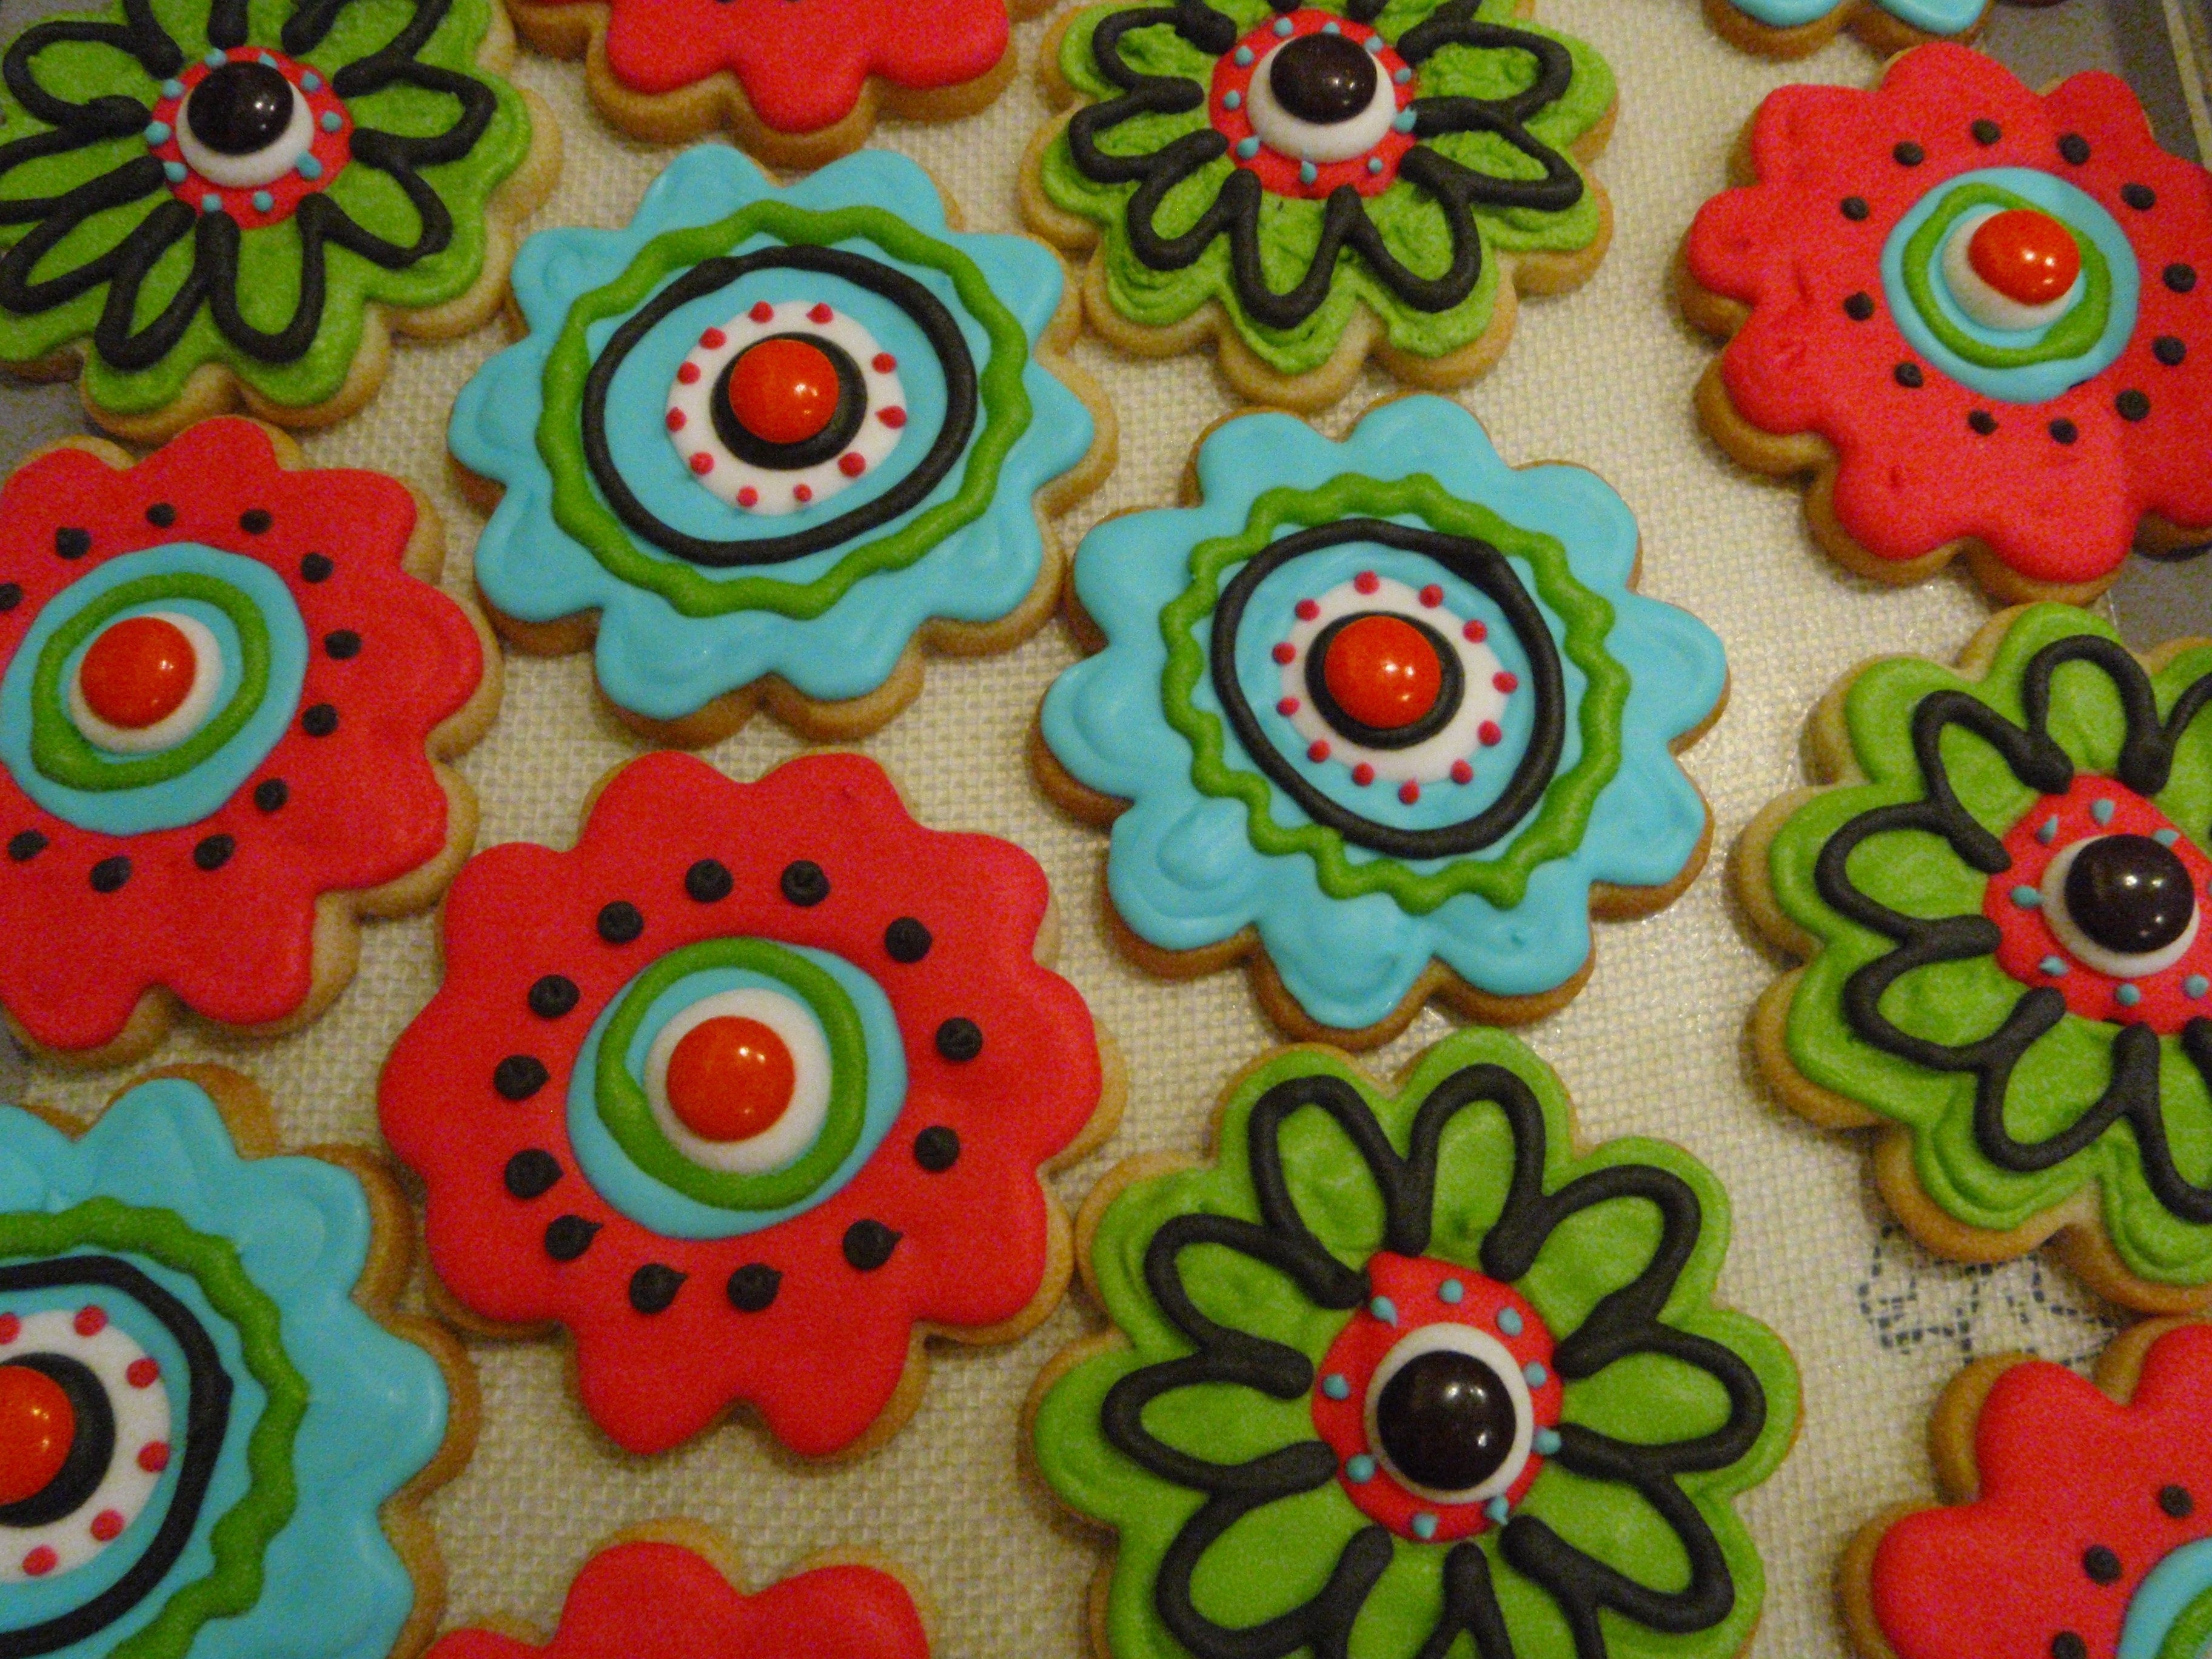 Funky Flower Cookies   For my daughter's 9th birthday to take to school